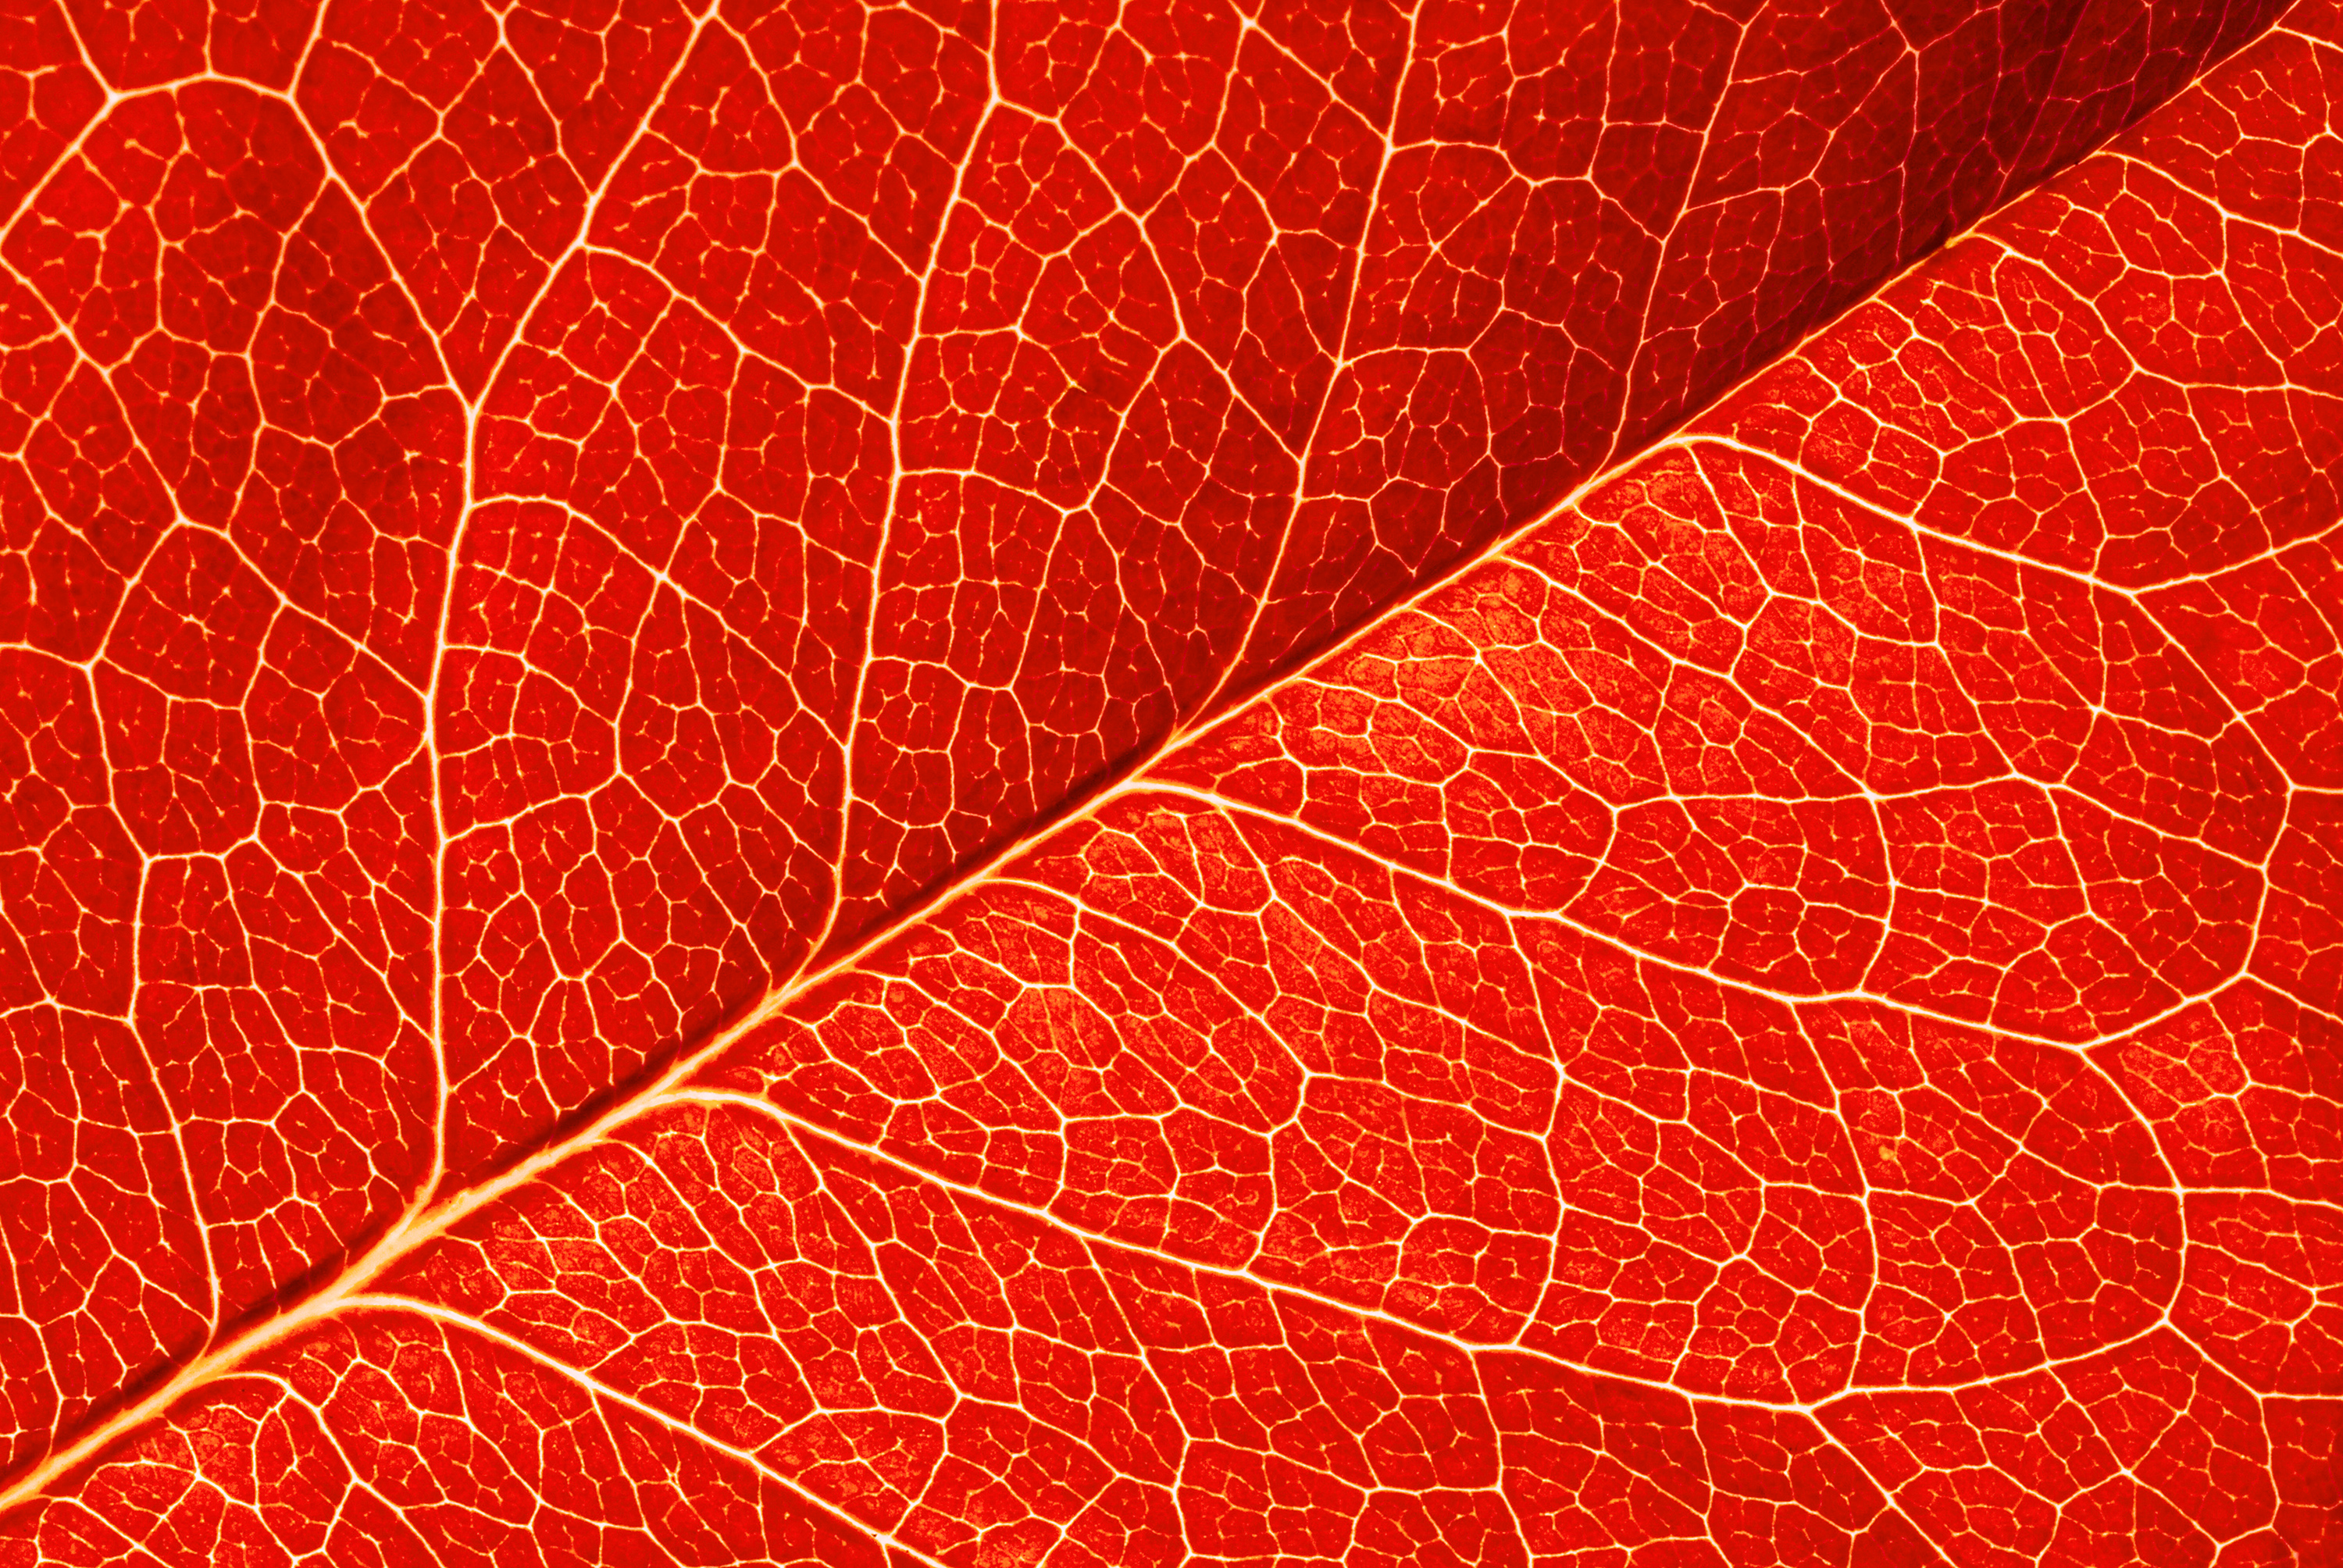 Leaf texture clipart clip art freeuse Red Leaf Texture Background | Gallery Yopriceville - High-Quality ... clip art freeuse